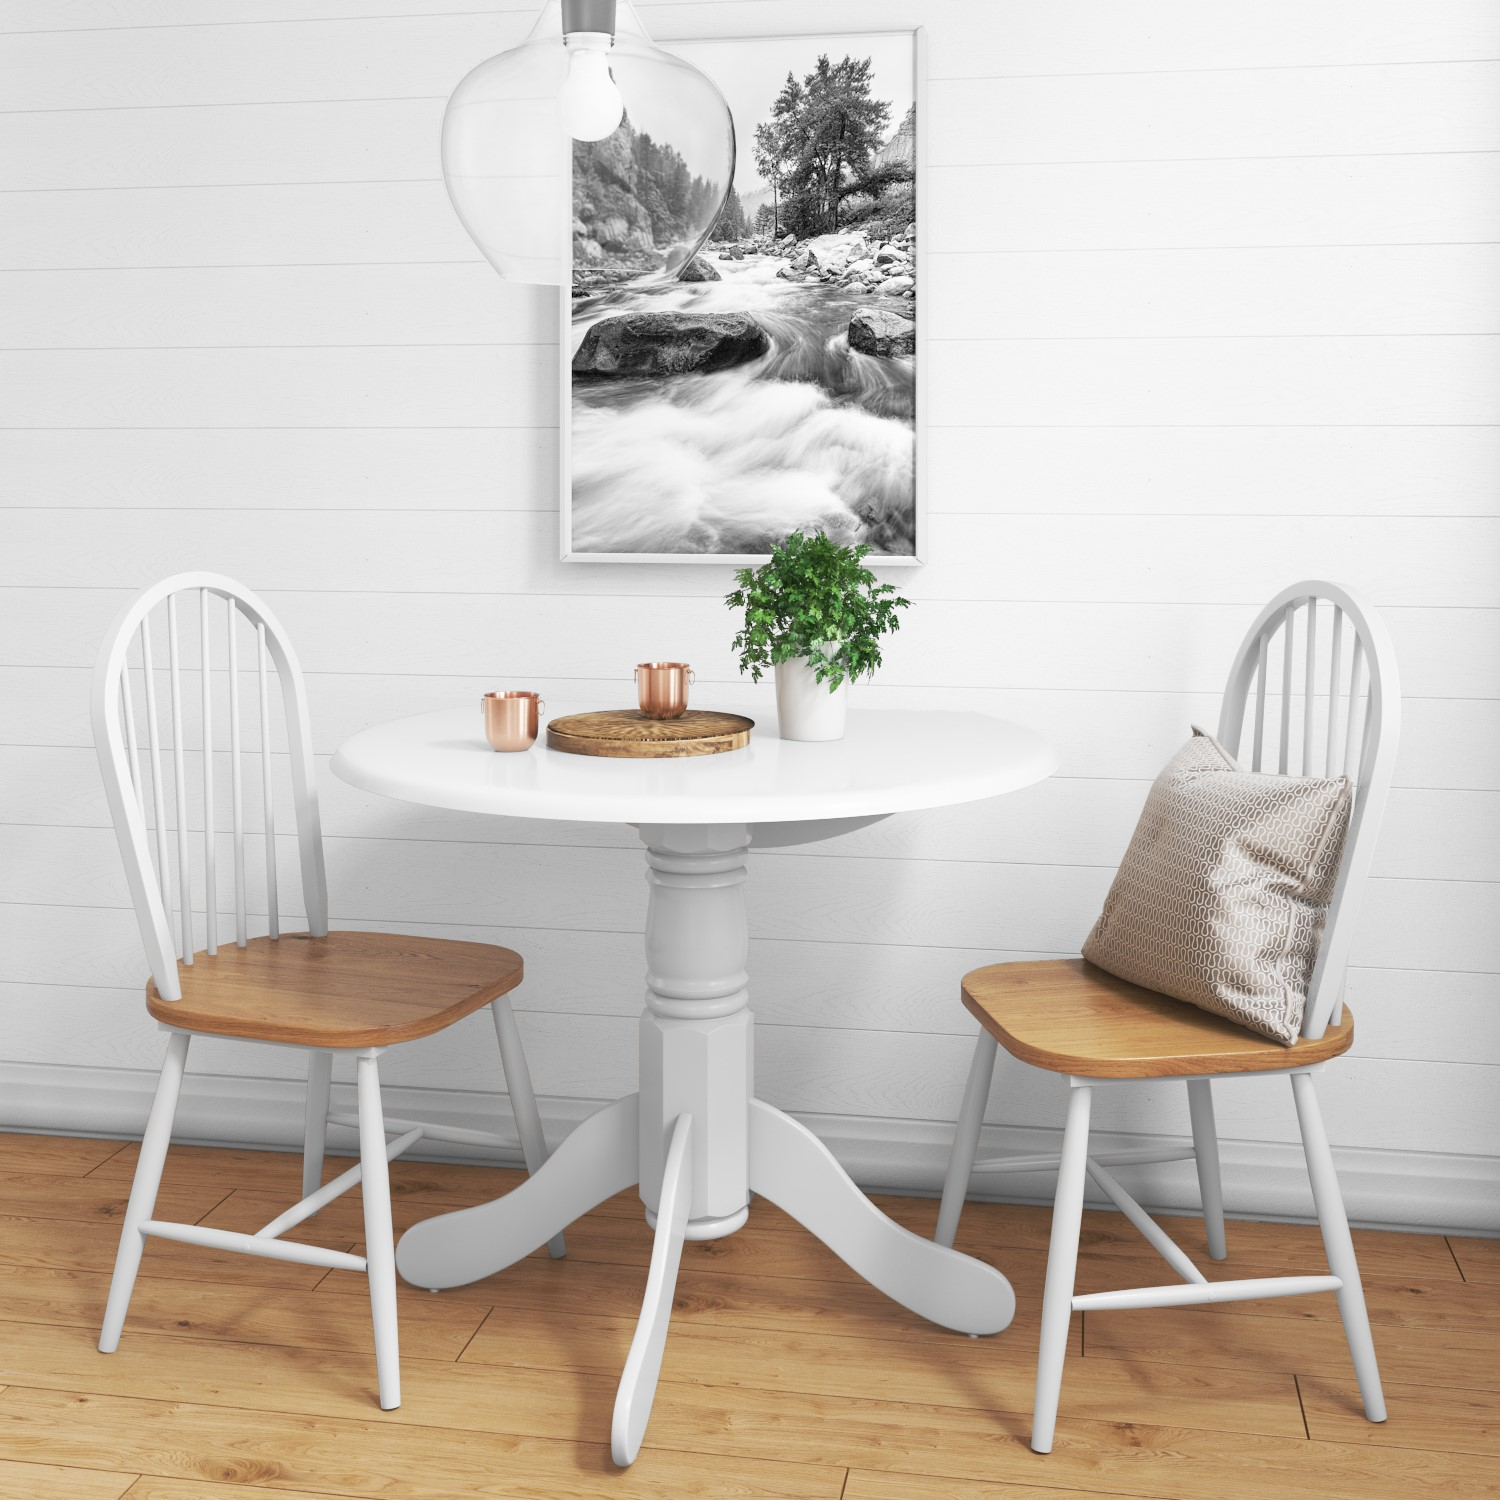 Small Round Dining Table In White With 2 Chairs Rhode Island Furniture123